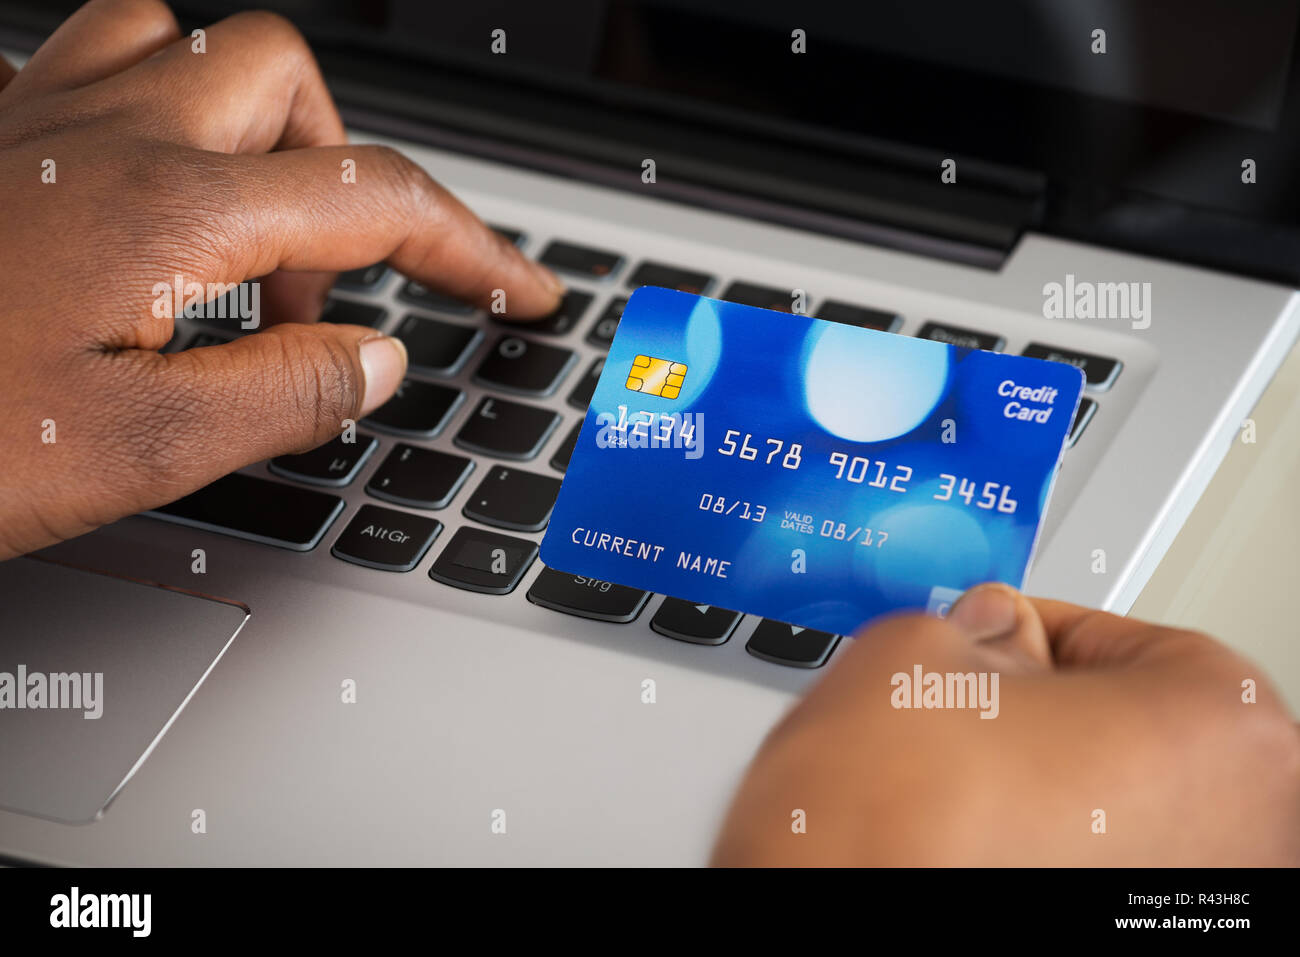 Person's Hand Using Debit Card While Shopping Online - Stock Image